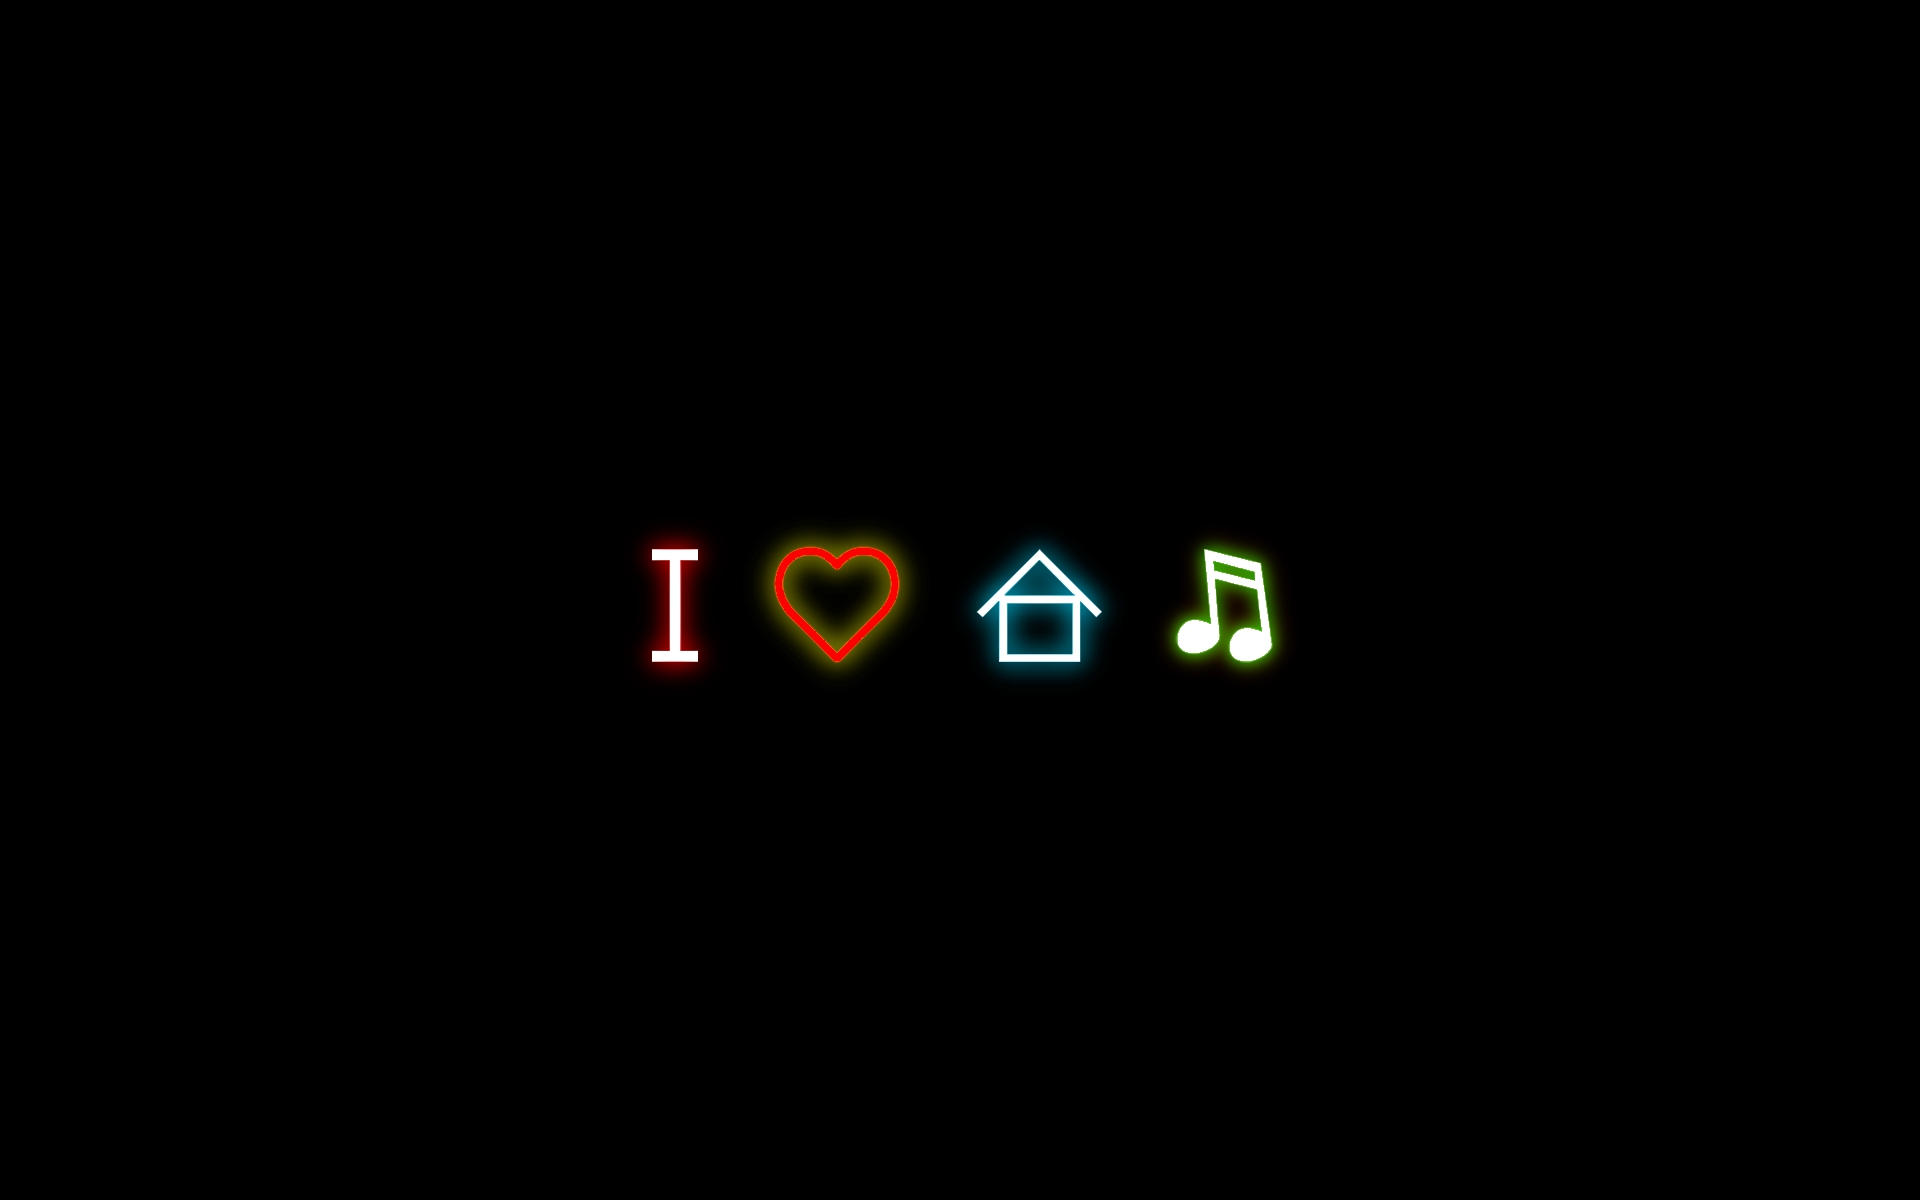 Love music house music wallpaper 1920x1200 13346 for Musik hause